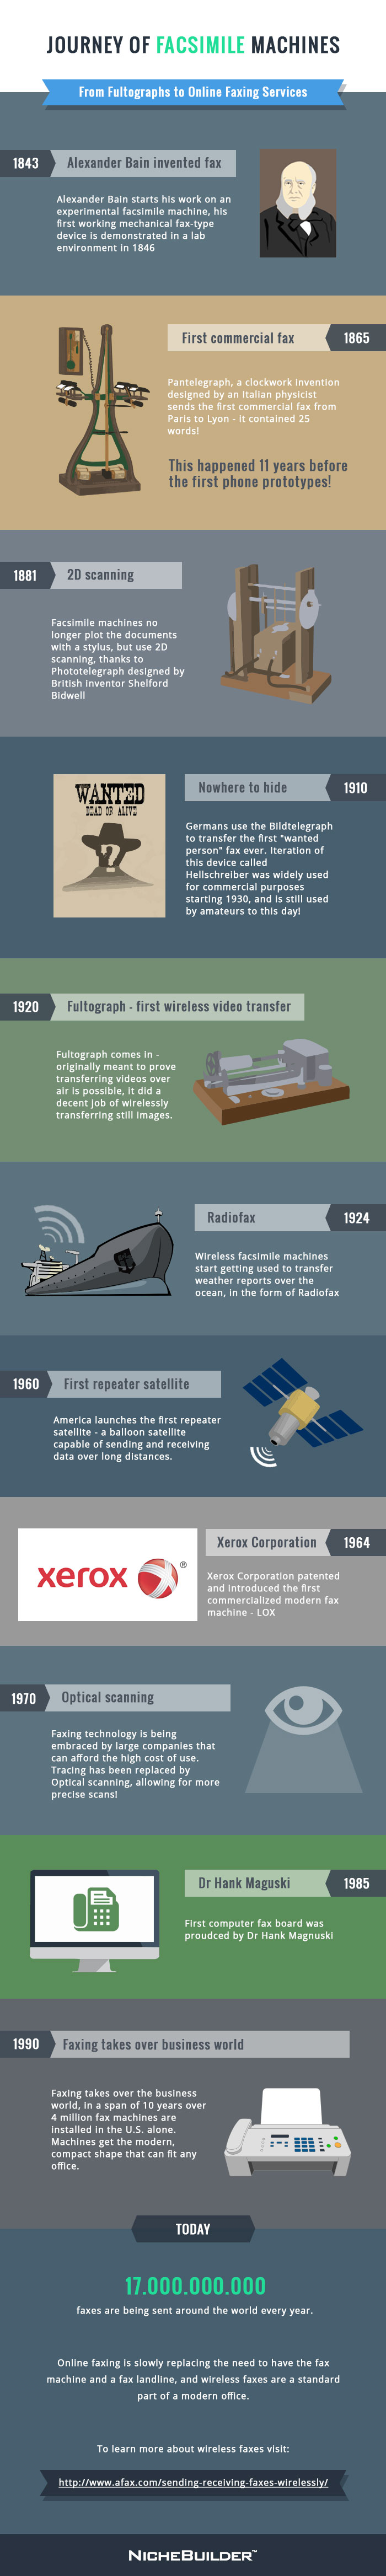 fax history infographic